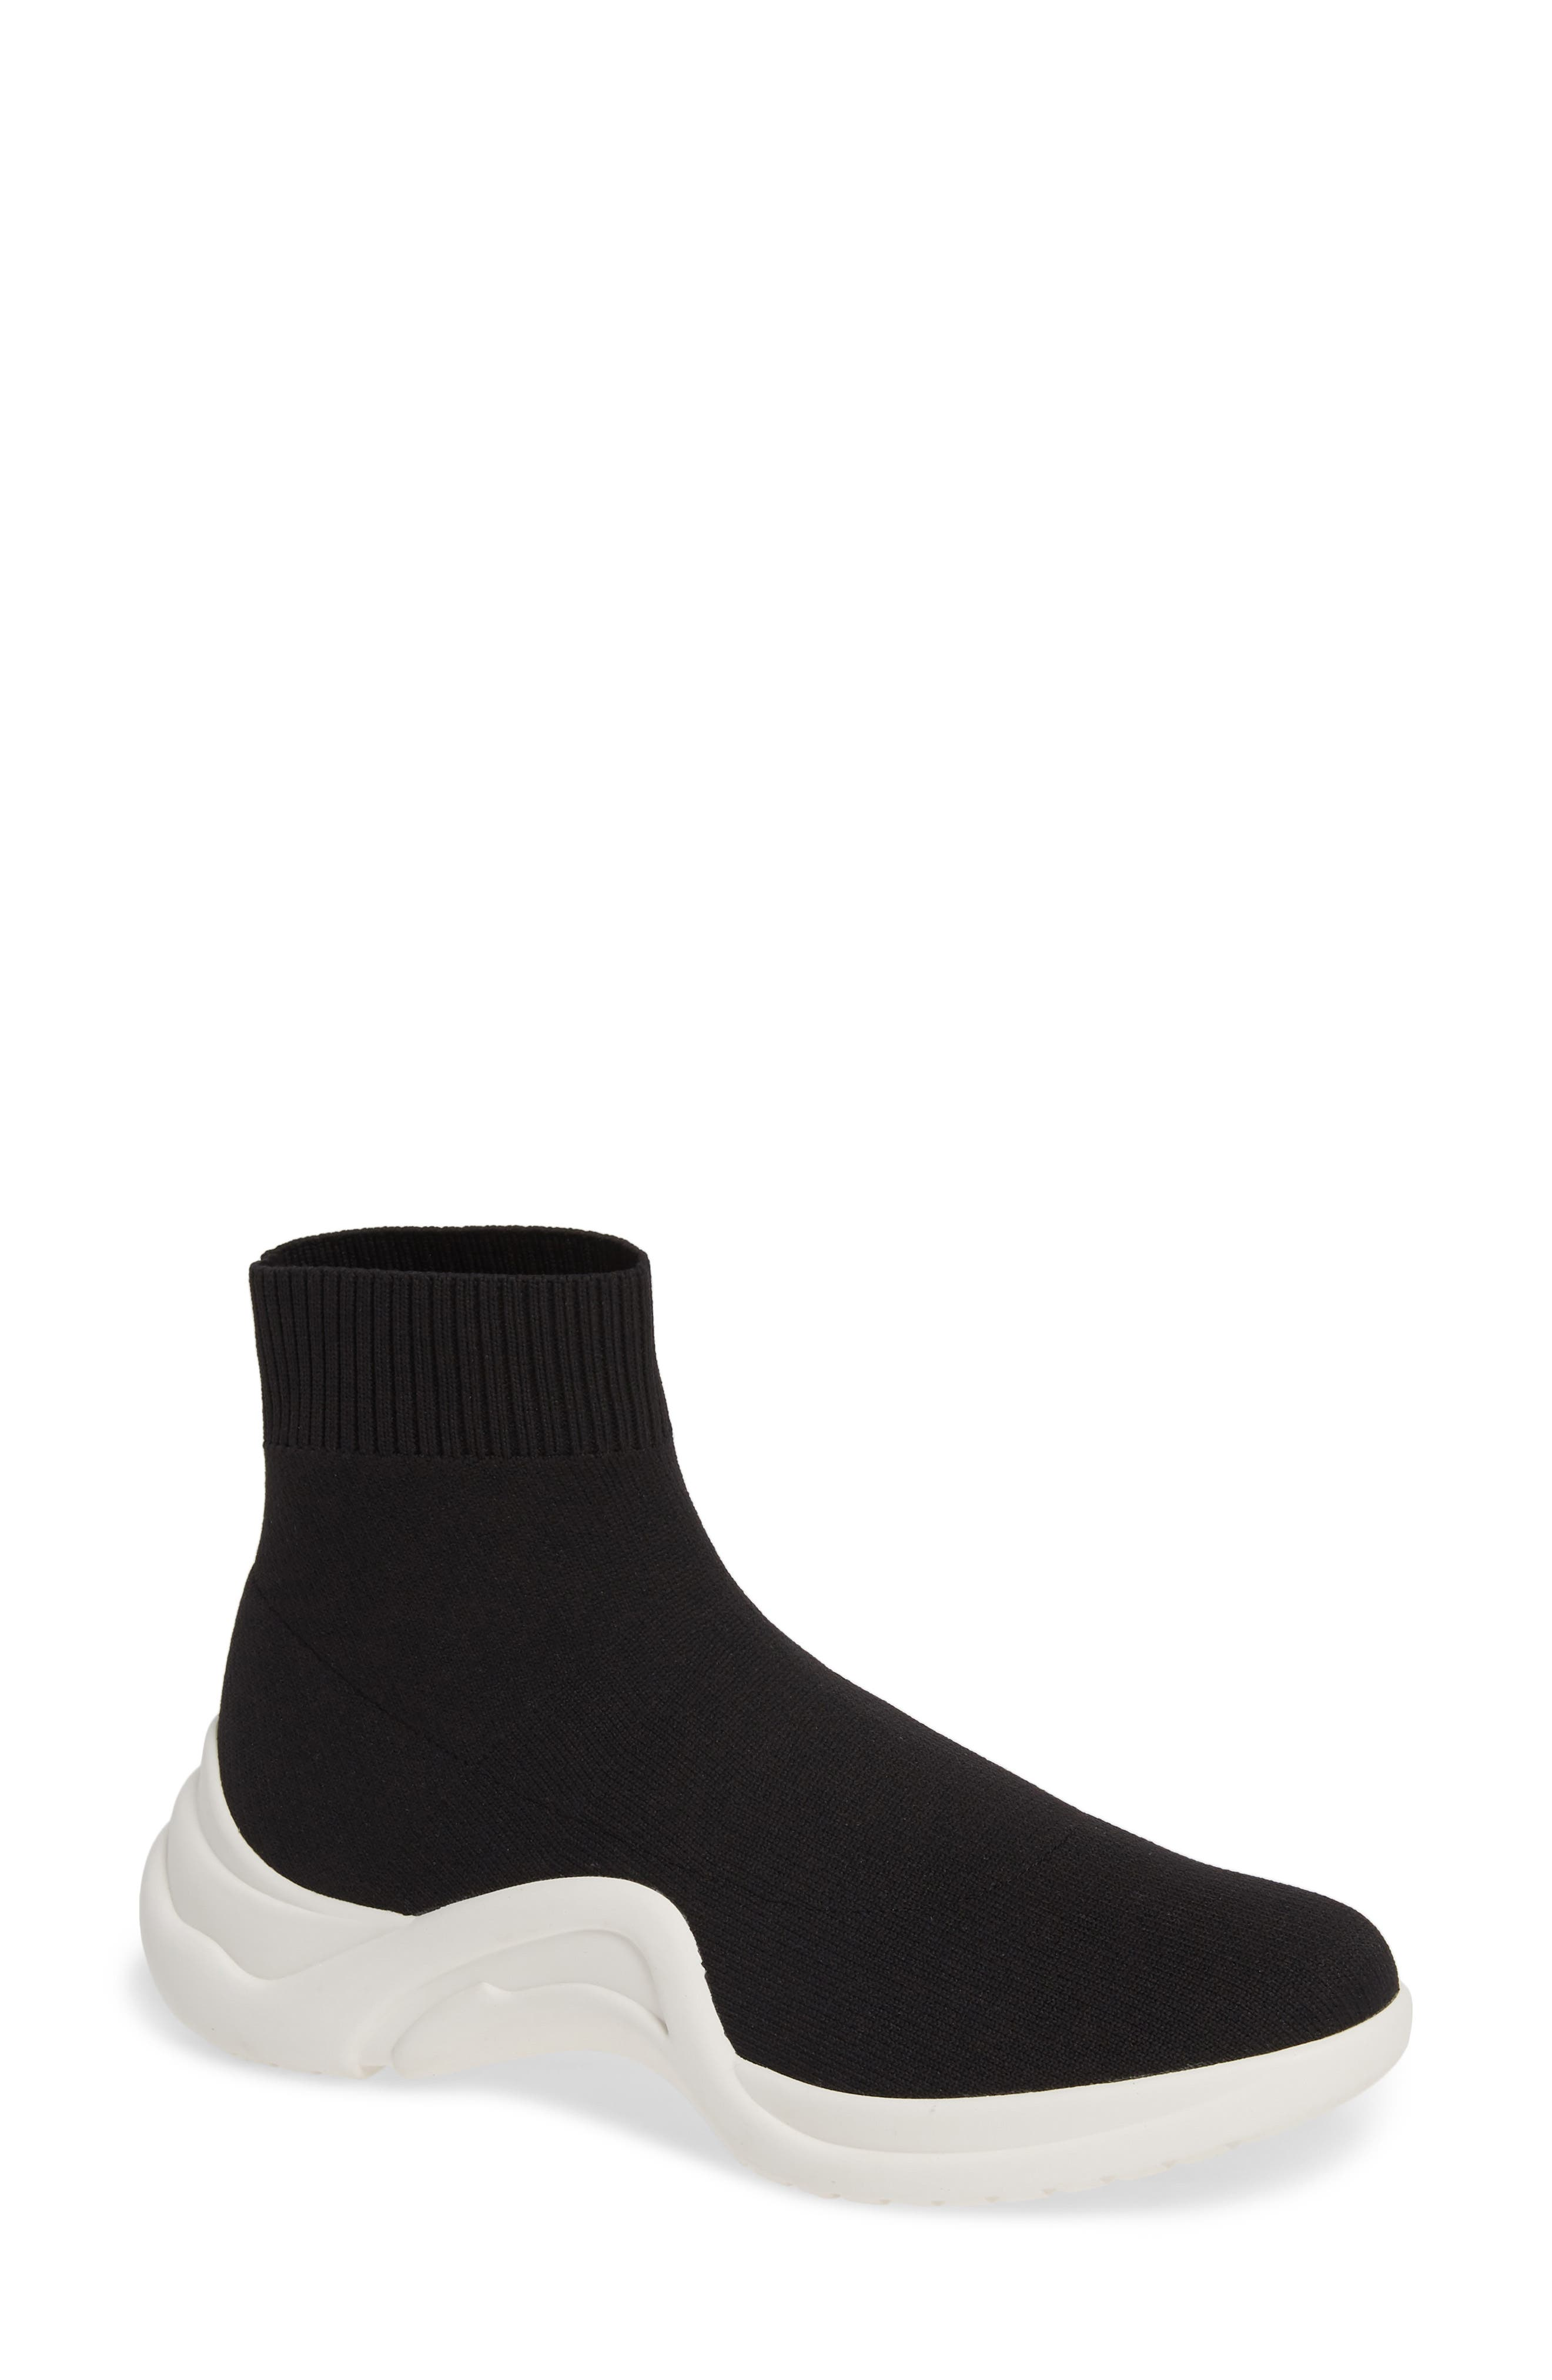 LINEA PAOLO, Gale Sneaker, Main thumbnail 1, color, BLACK KNIT FABRIC